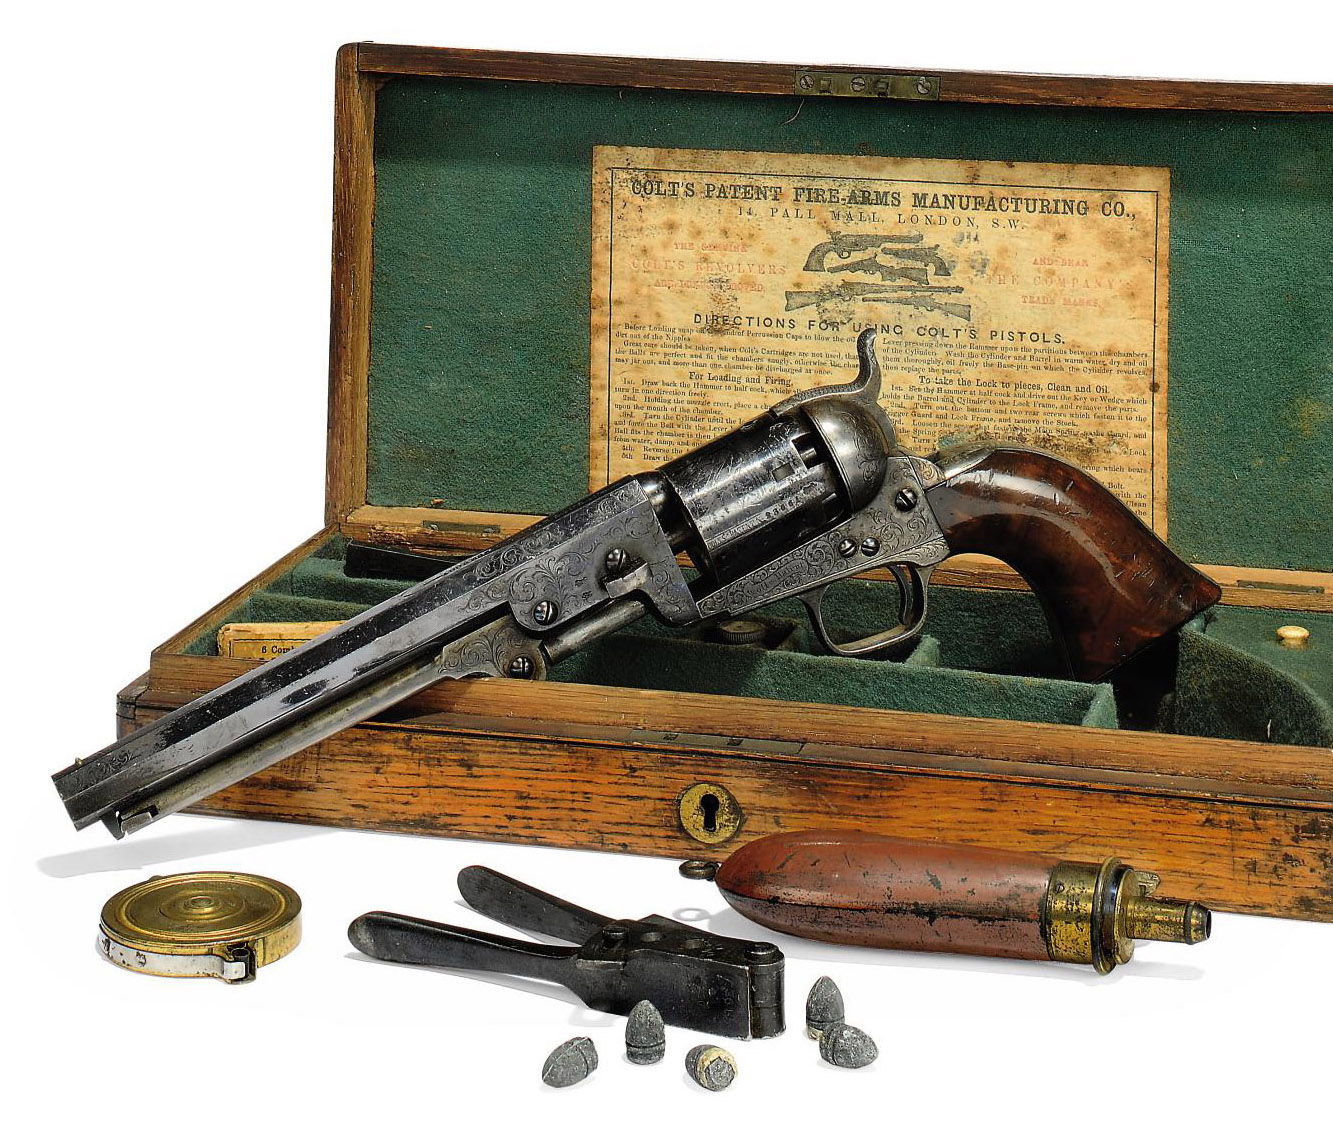 A FINE CASED FACTORY ENGRAVED .36 'MODEL 1851' SIX-SHOT SINGLE-ACTION PERCUSSION NAVY REVOLVER